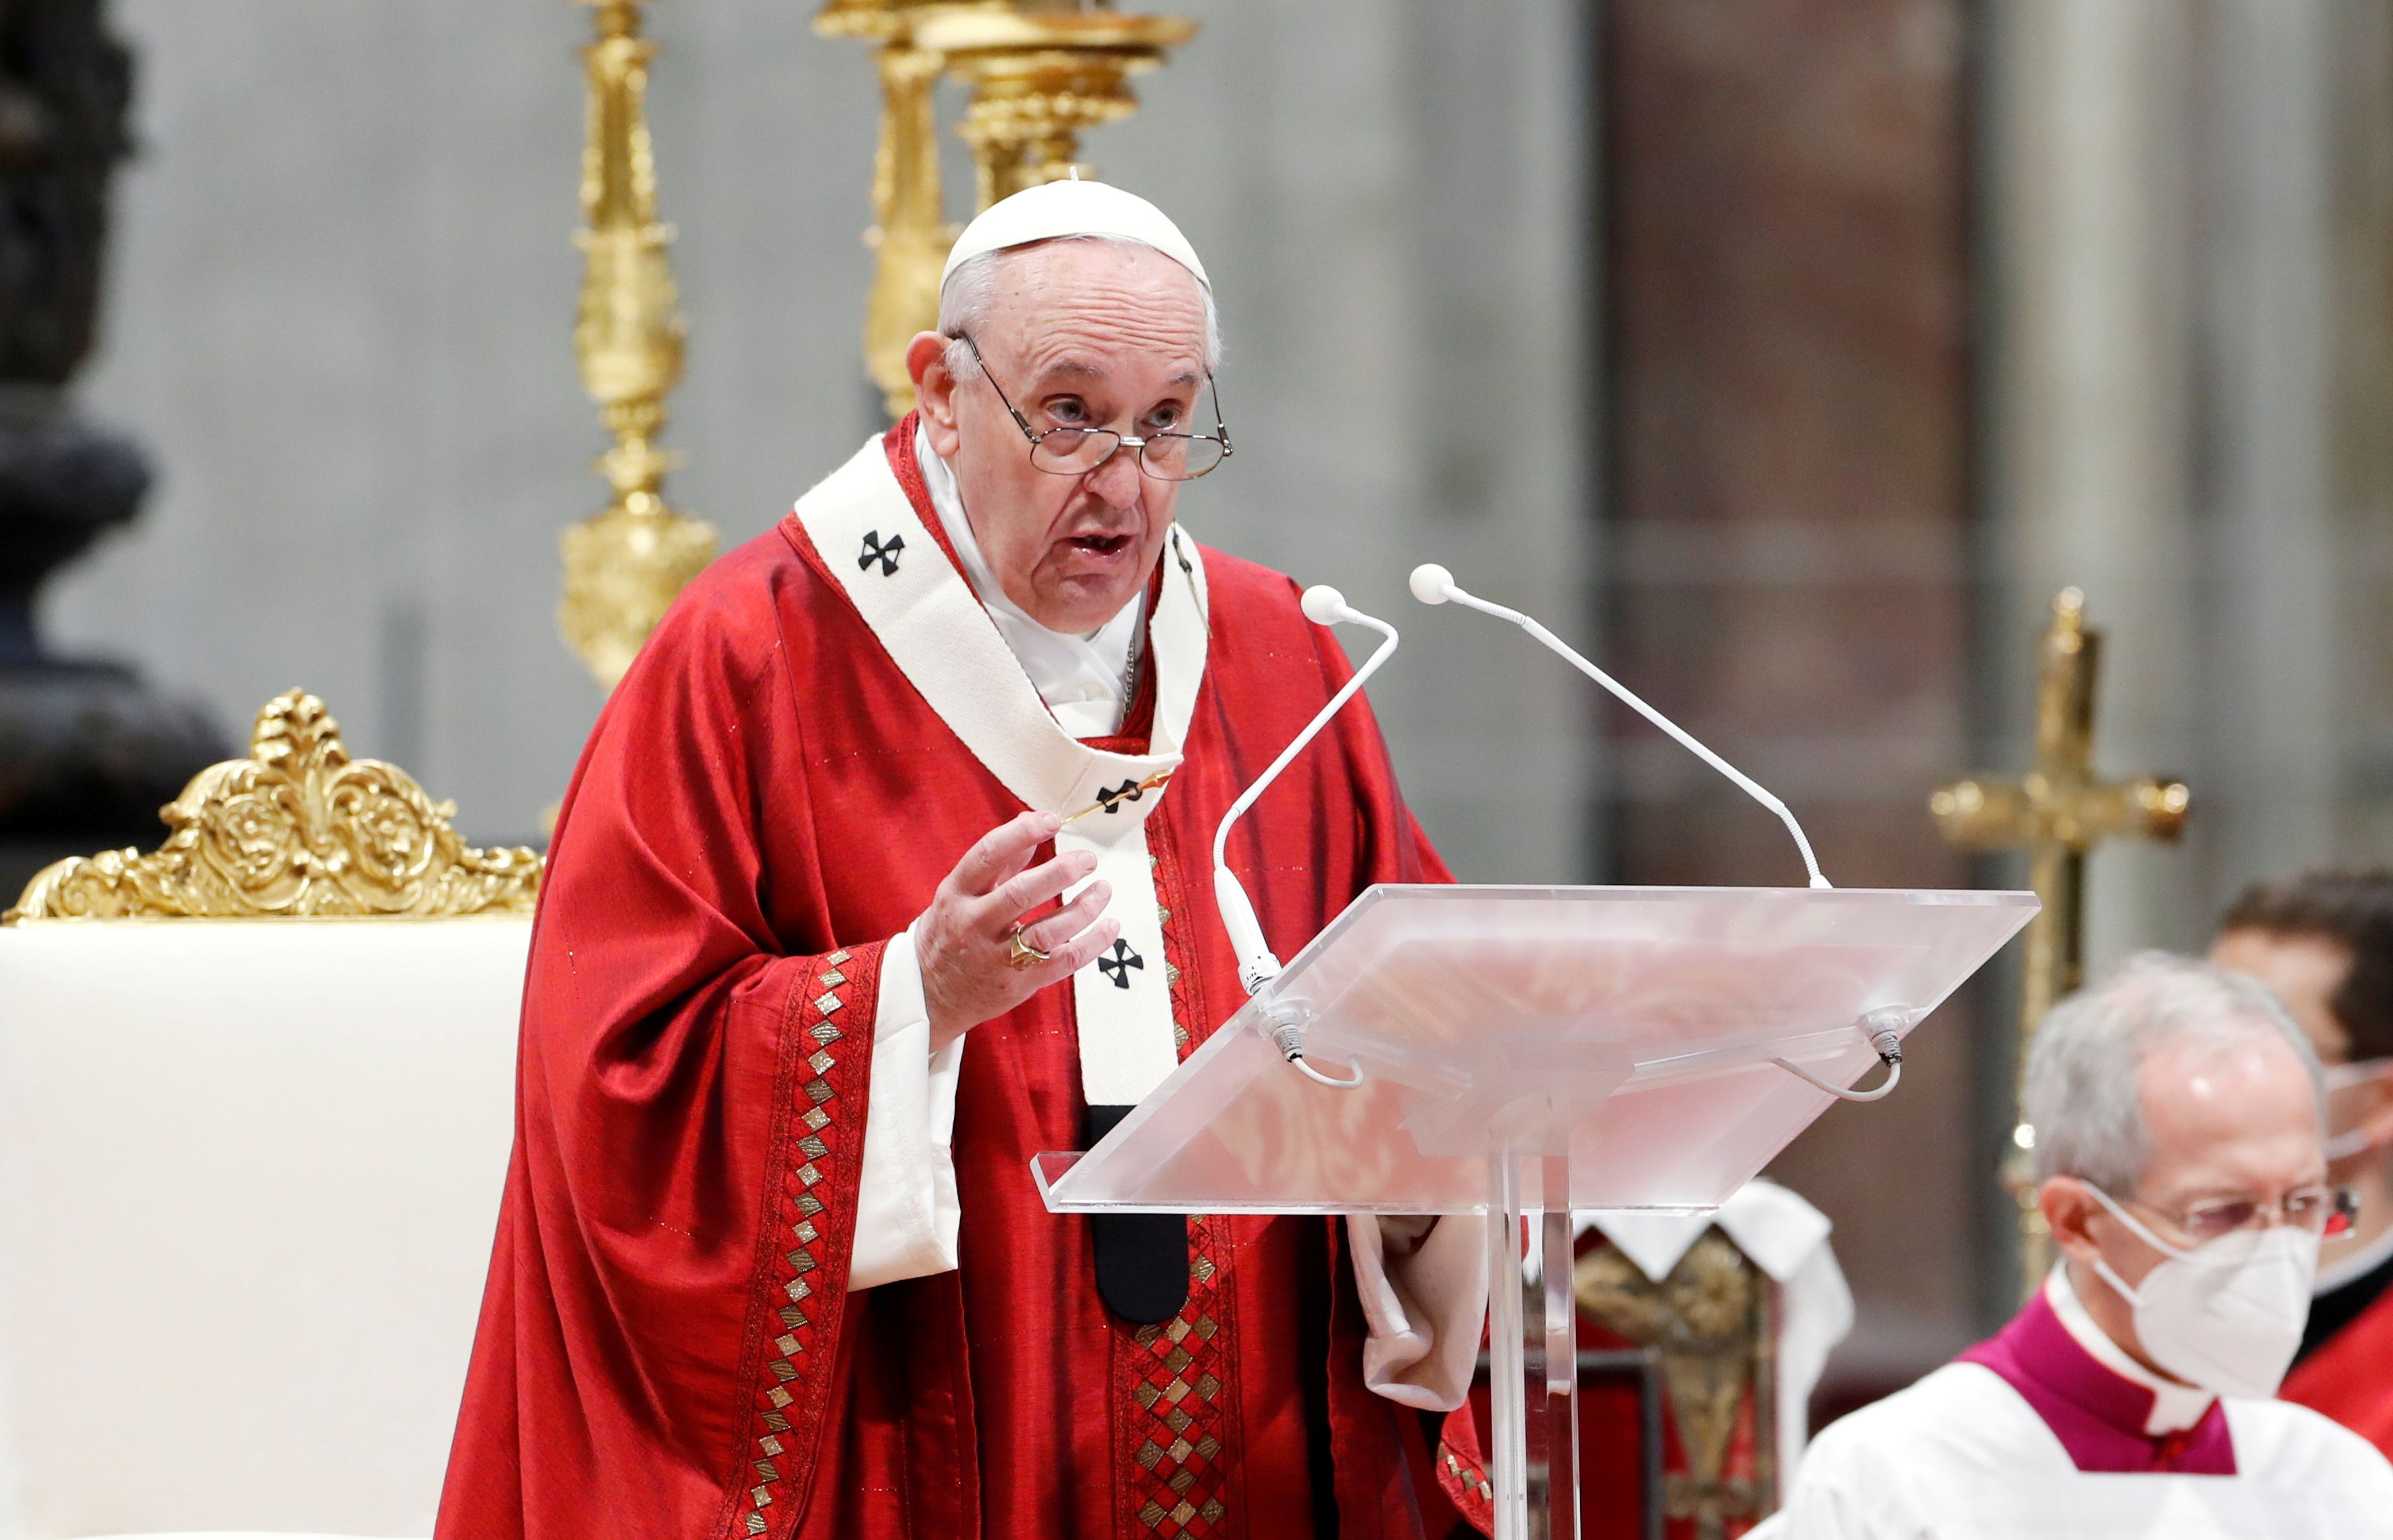 Pope Francis leads the Pentecost Mass at St. Peter's Basilica at the Vatican May 23, 2021. REUTERS/Remo Casilli/File Photo